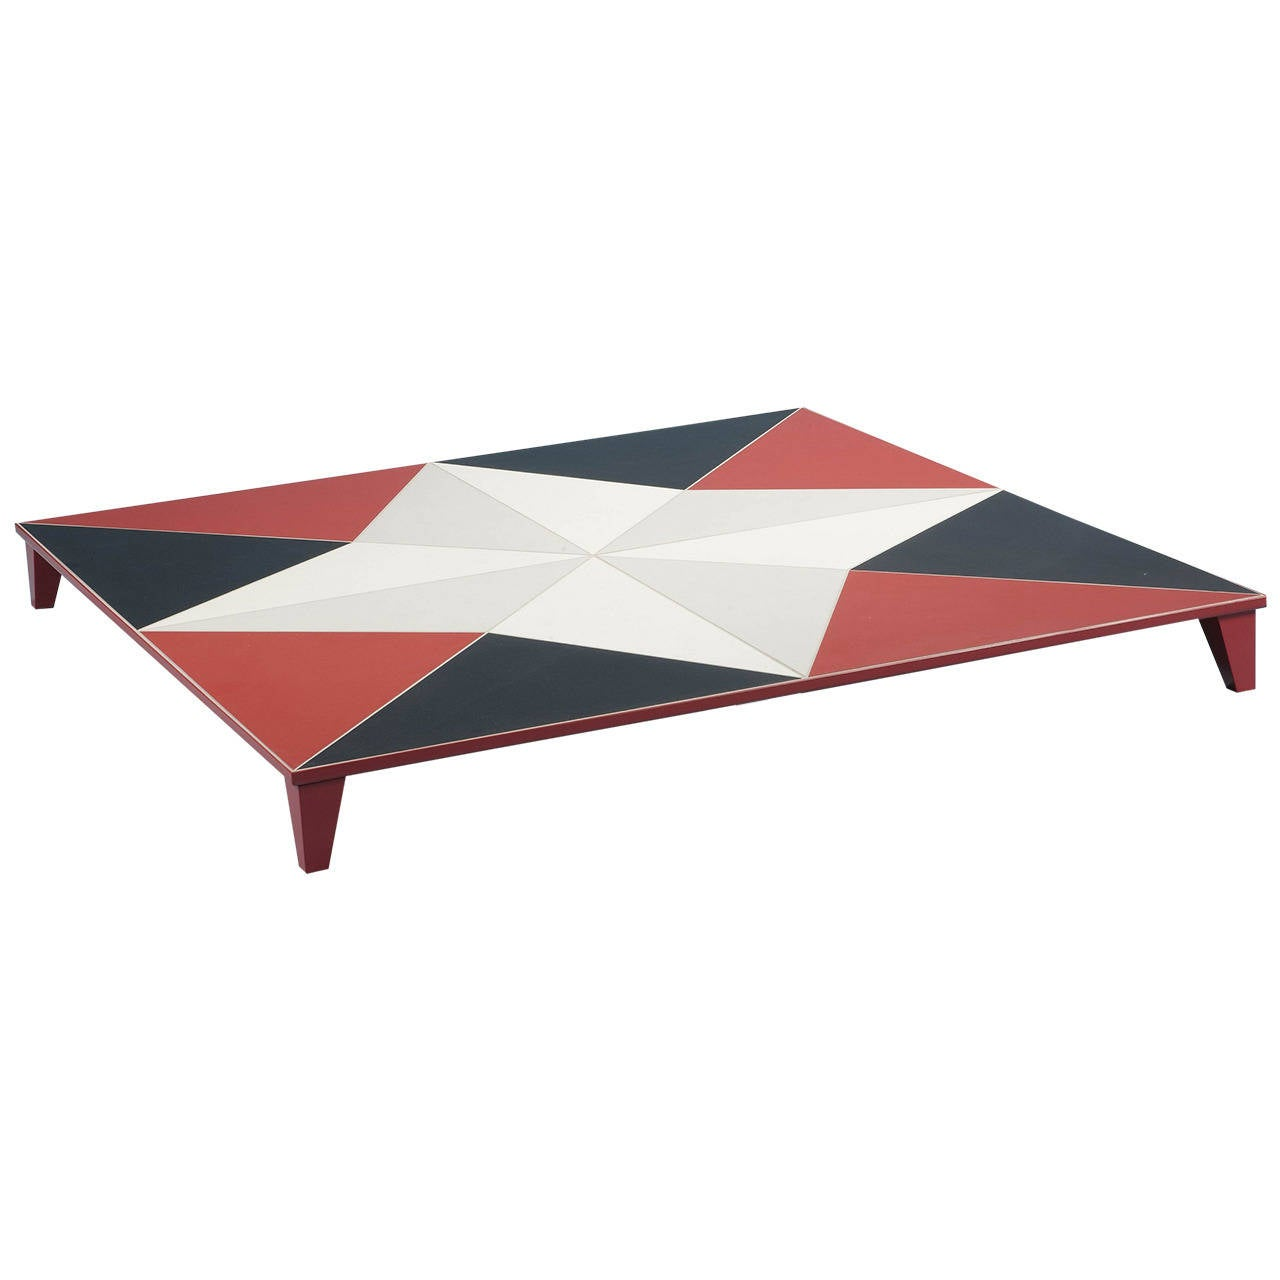 Coffee Table By Christian Biecher Cat Berro Edition 2010